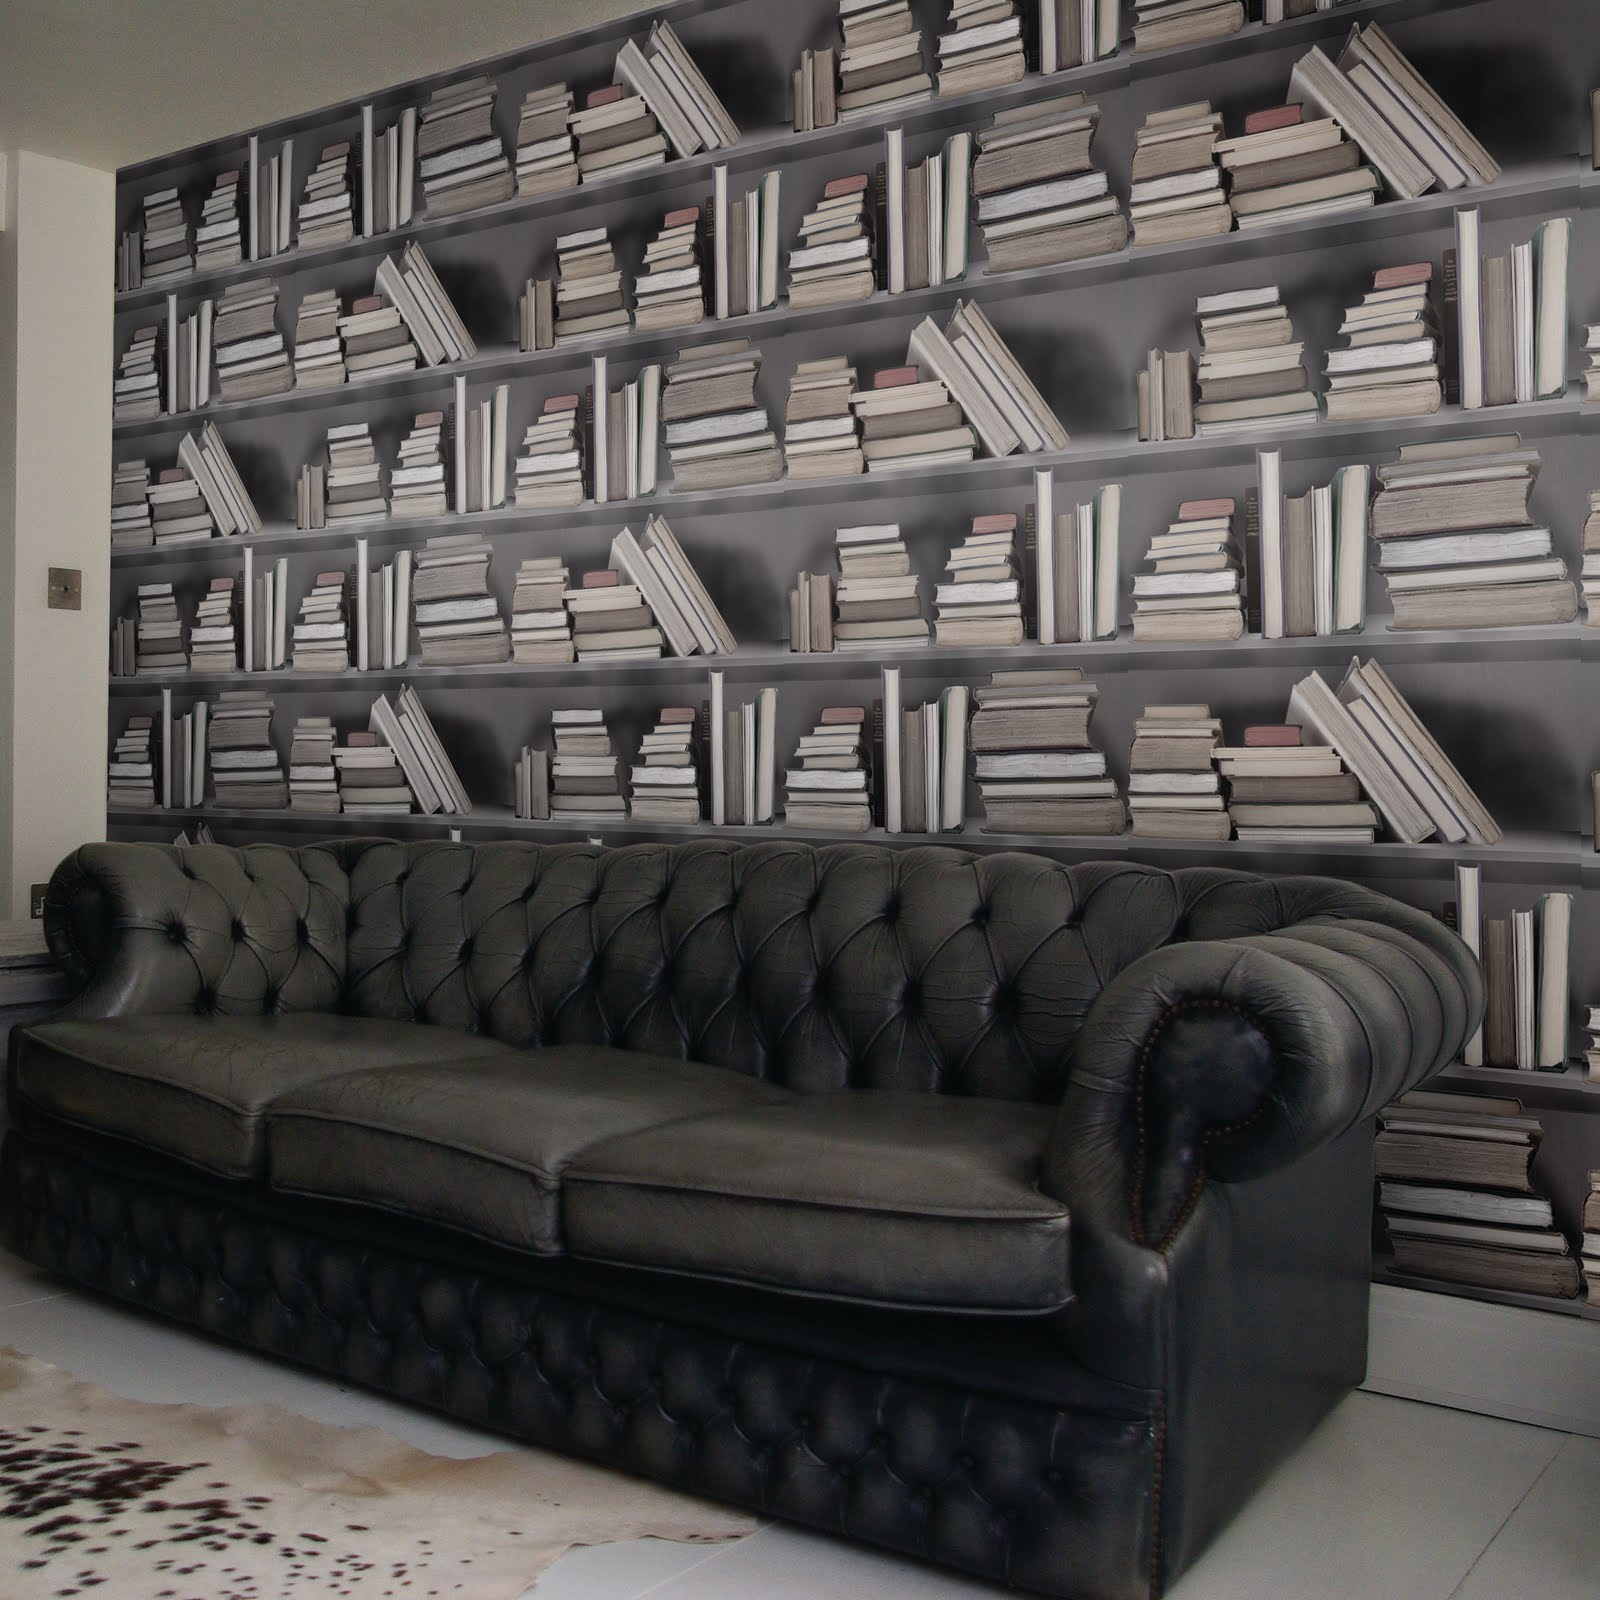 Ridiculously fab Bookshelf wallpaper